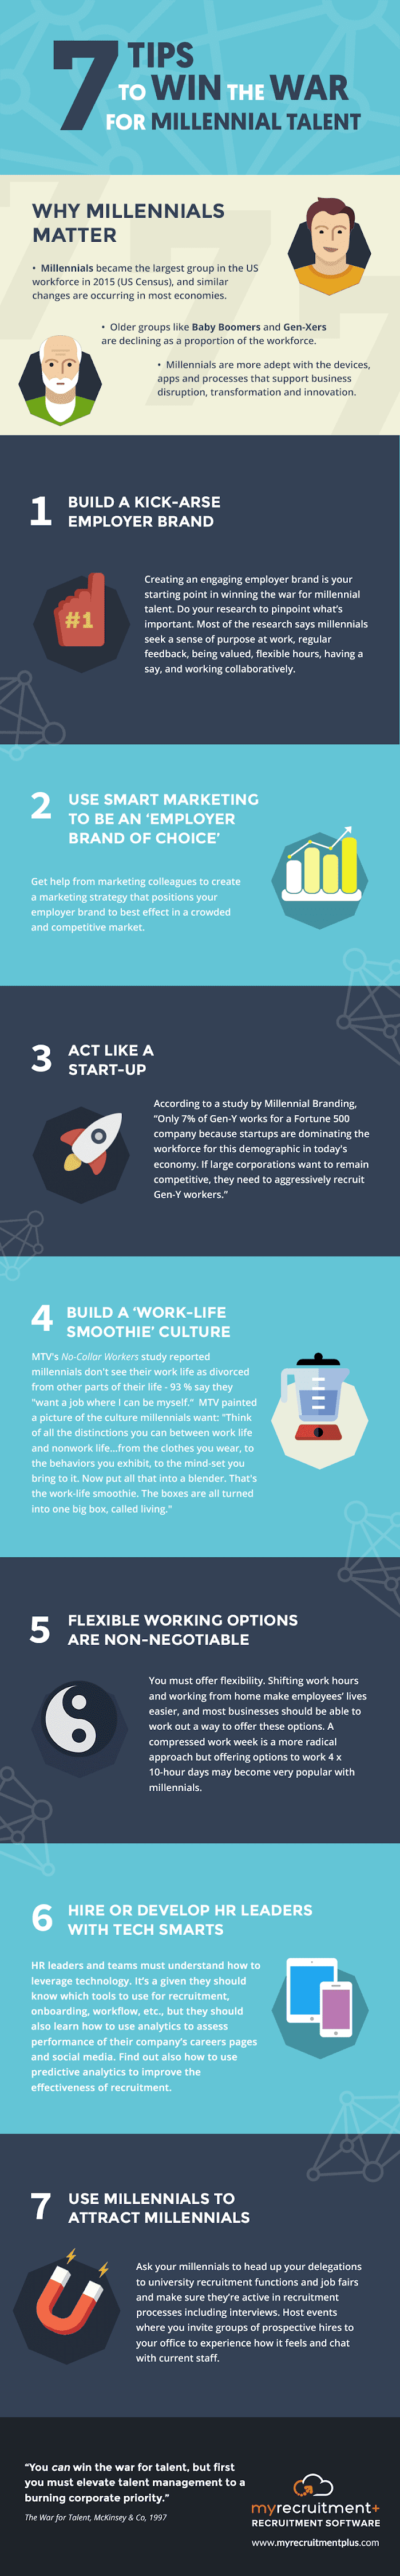 7 tips to win the war for millennial talent #infographic